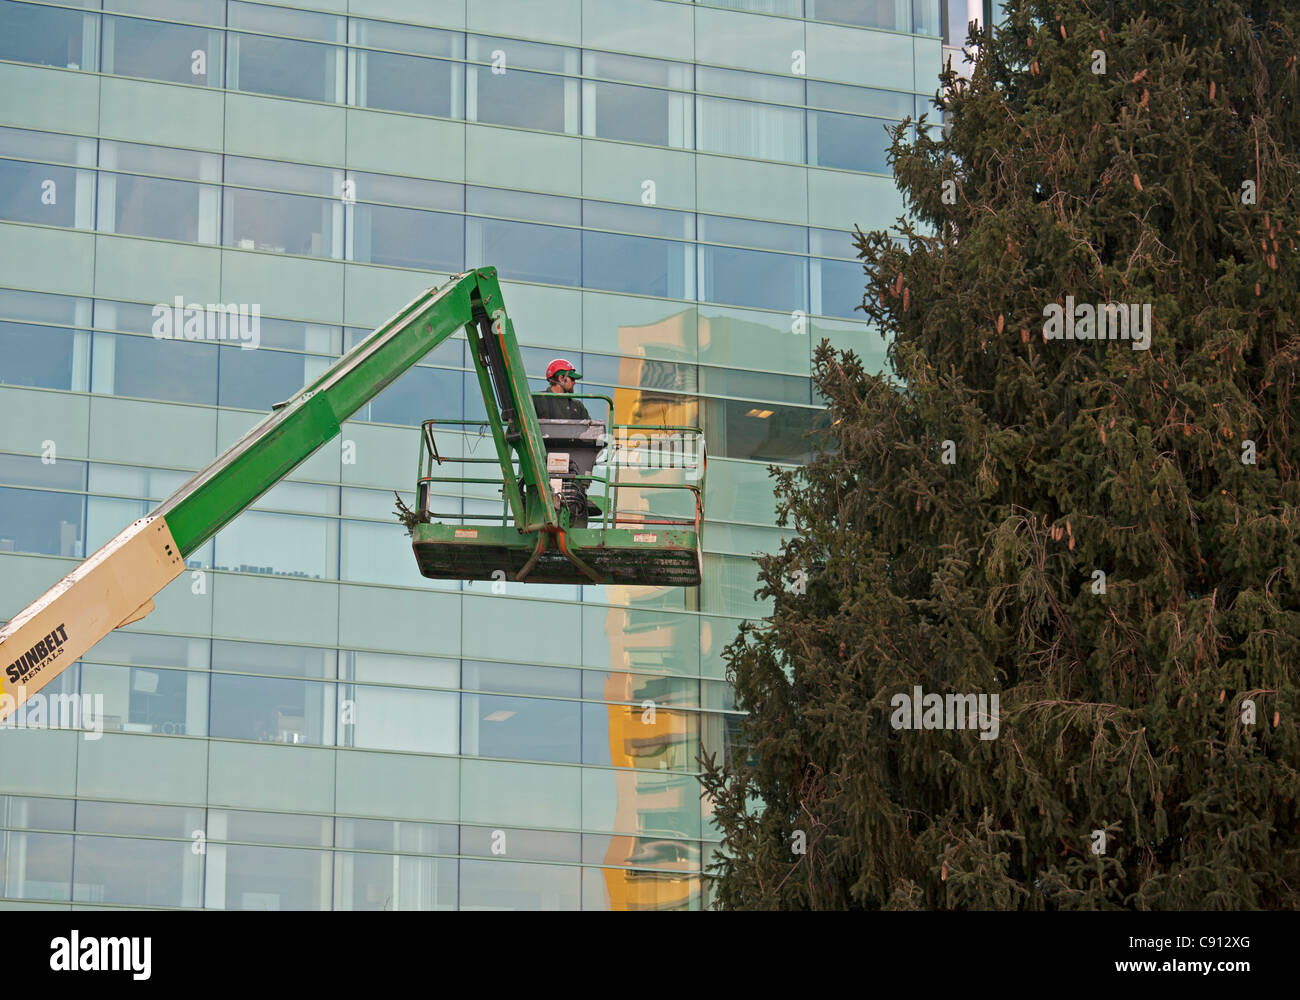 Detroit, Michigan - A worker prepares to decorate a 69-foot Norway spruce Christmas tree in Campus Martius Park. - Stock Image